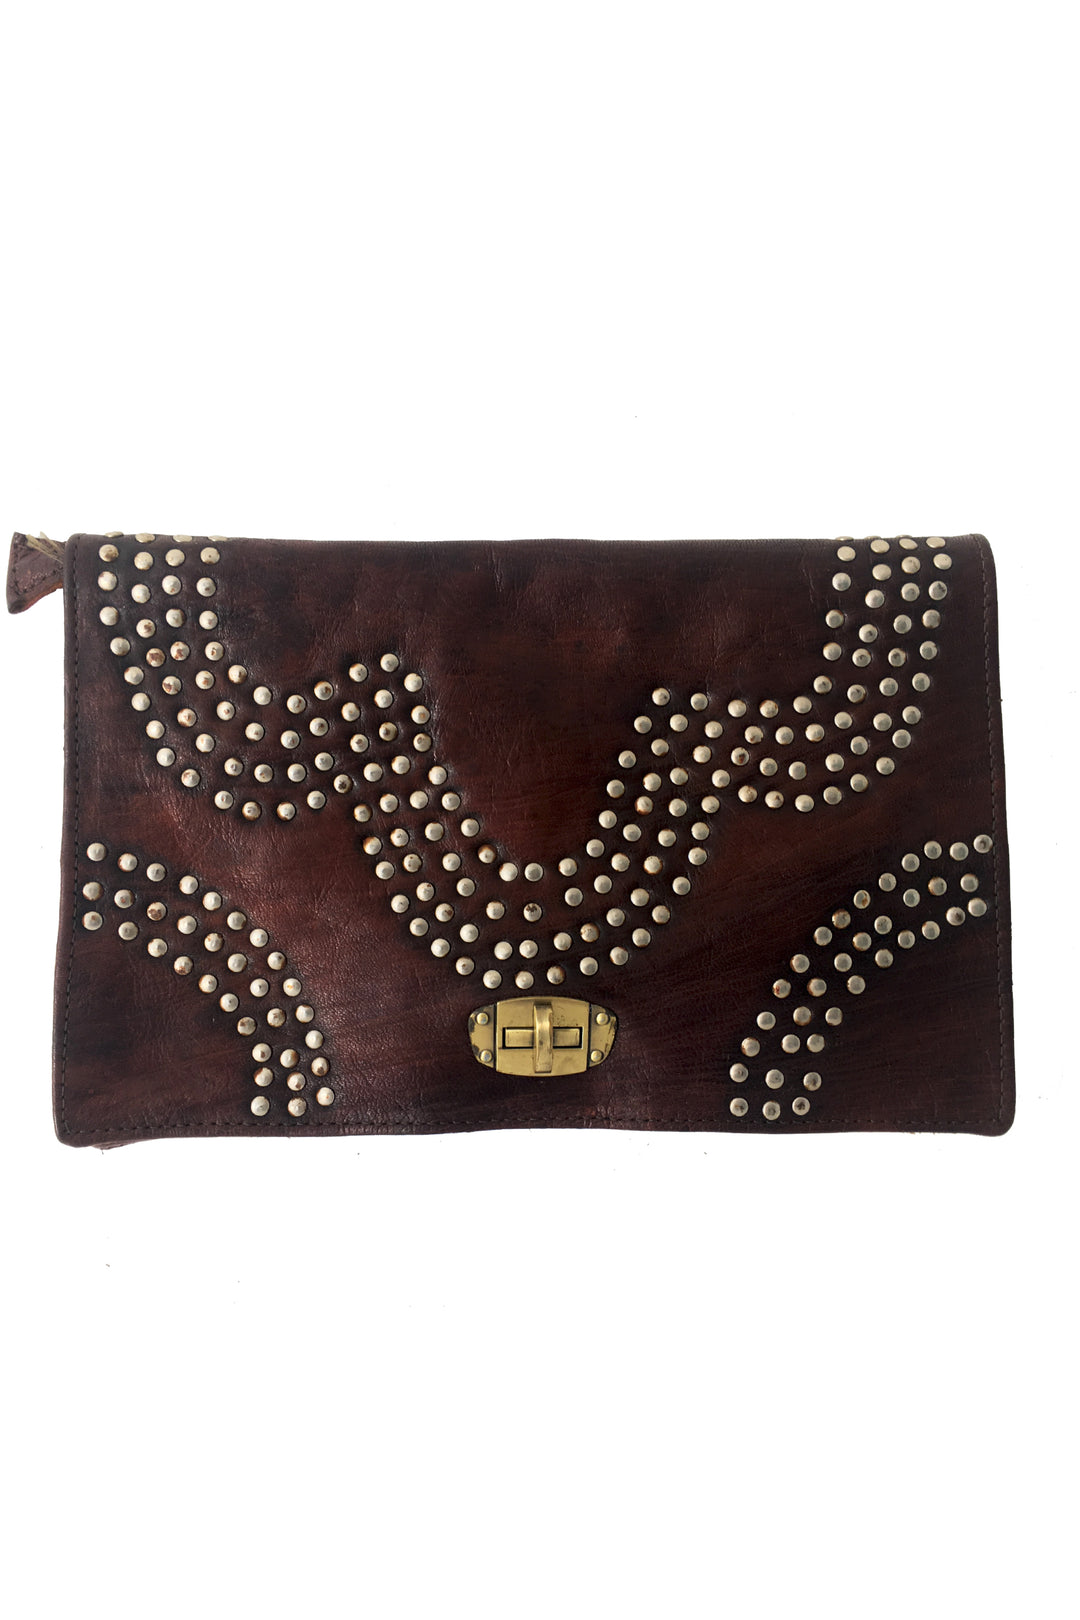 tangiers leather studded clutch bag